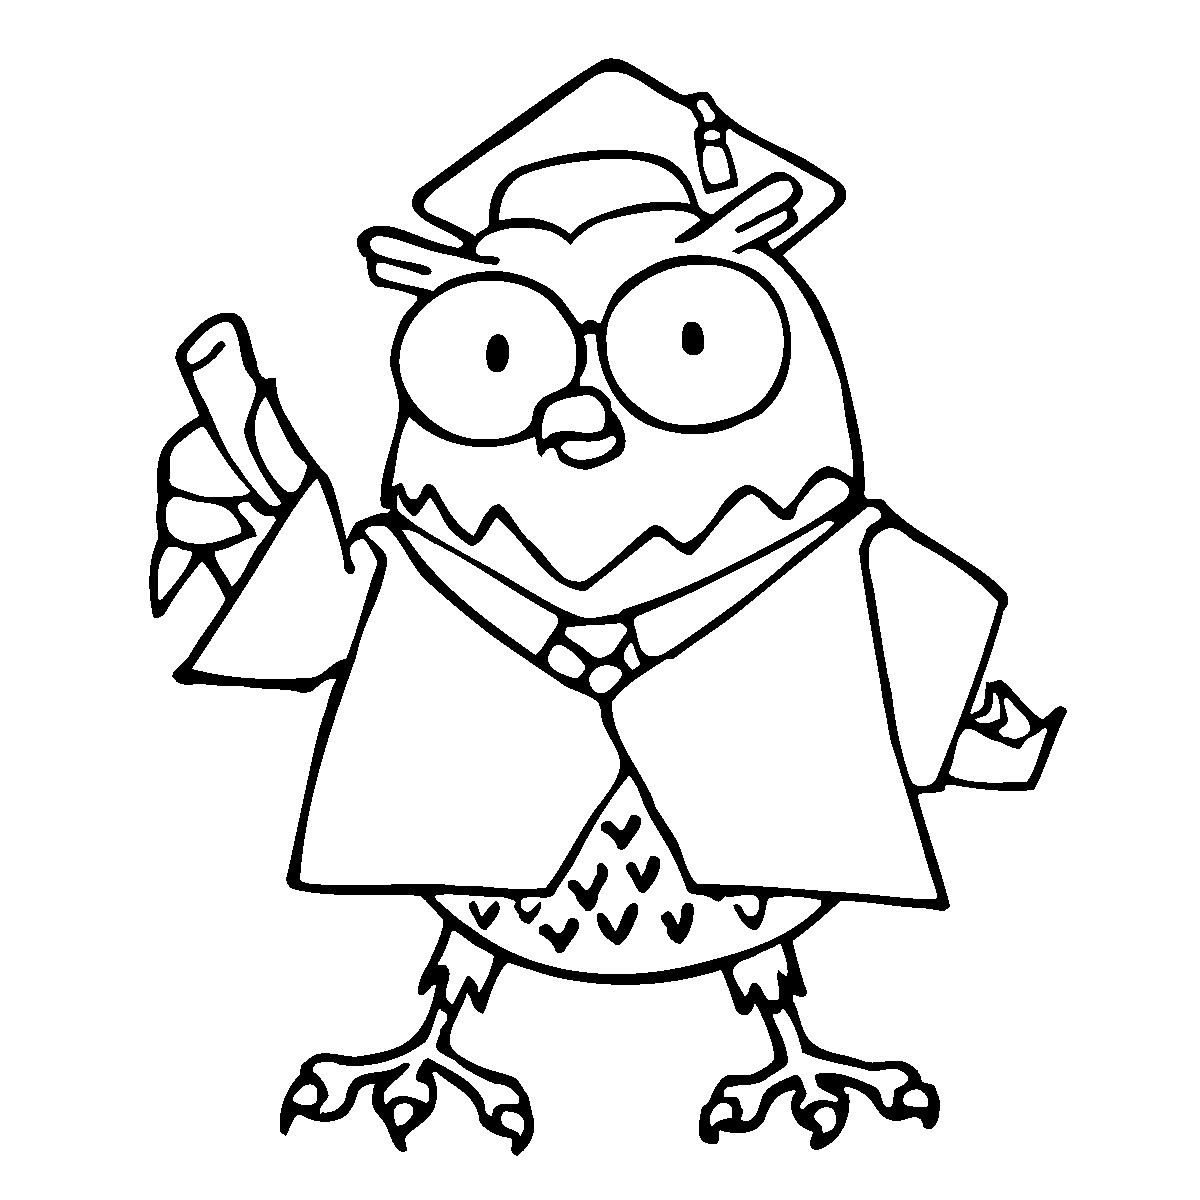 1200x1200 Owl Coloring Pages For Kids Printable Coloring Pages